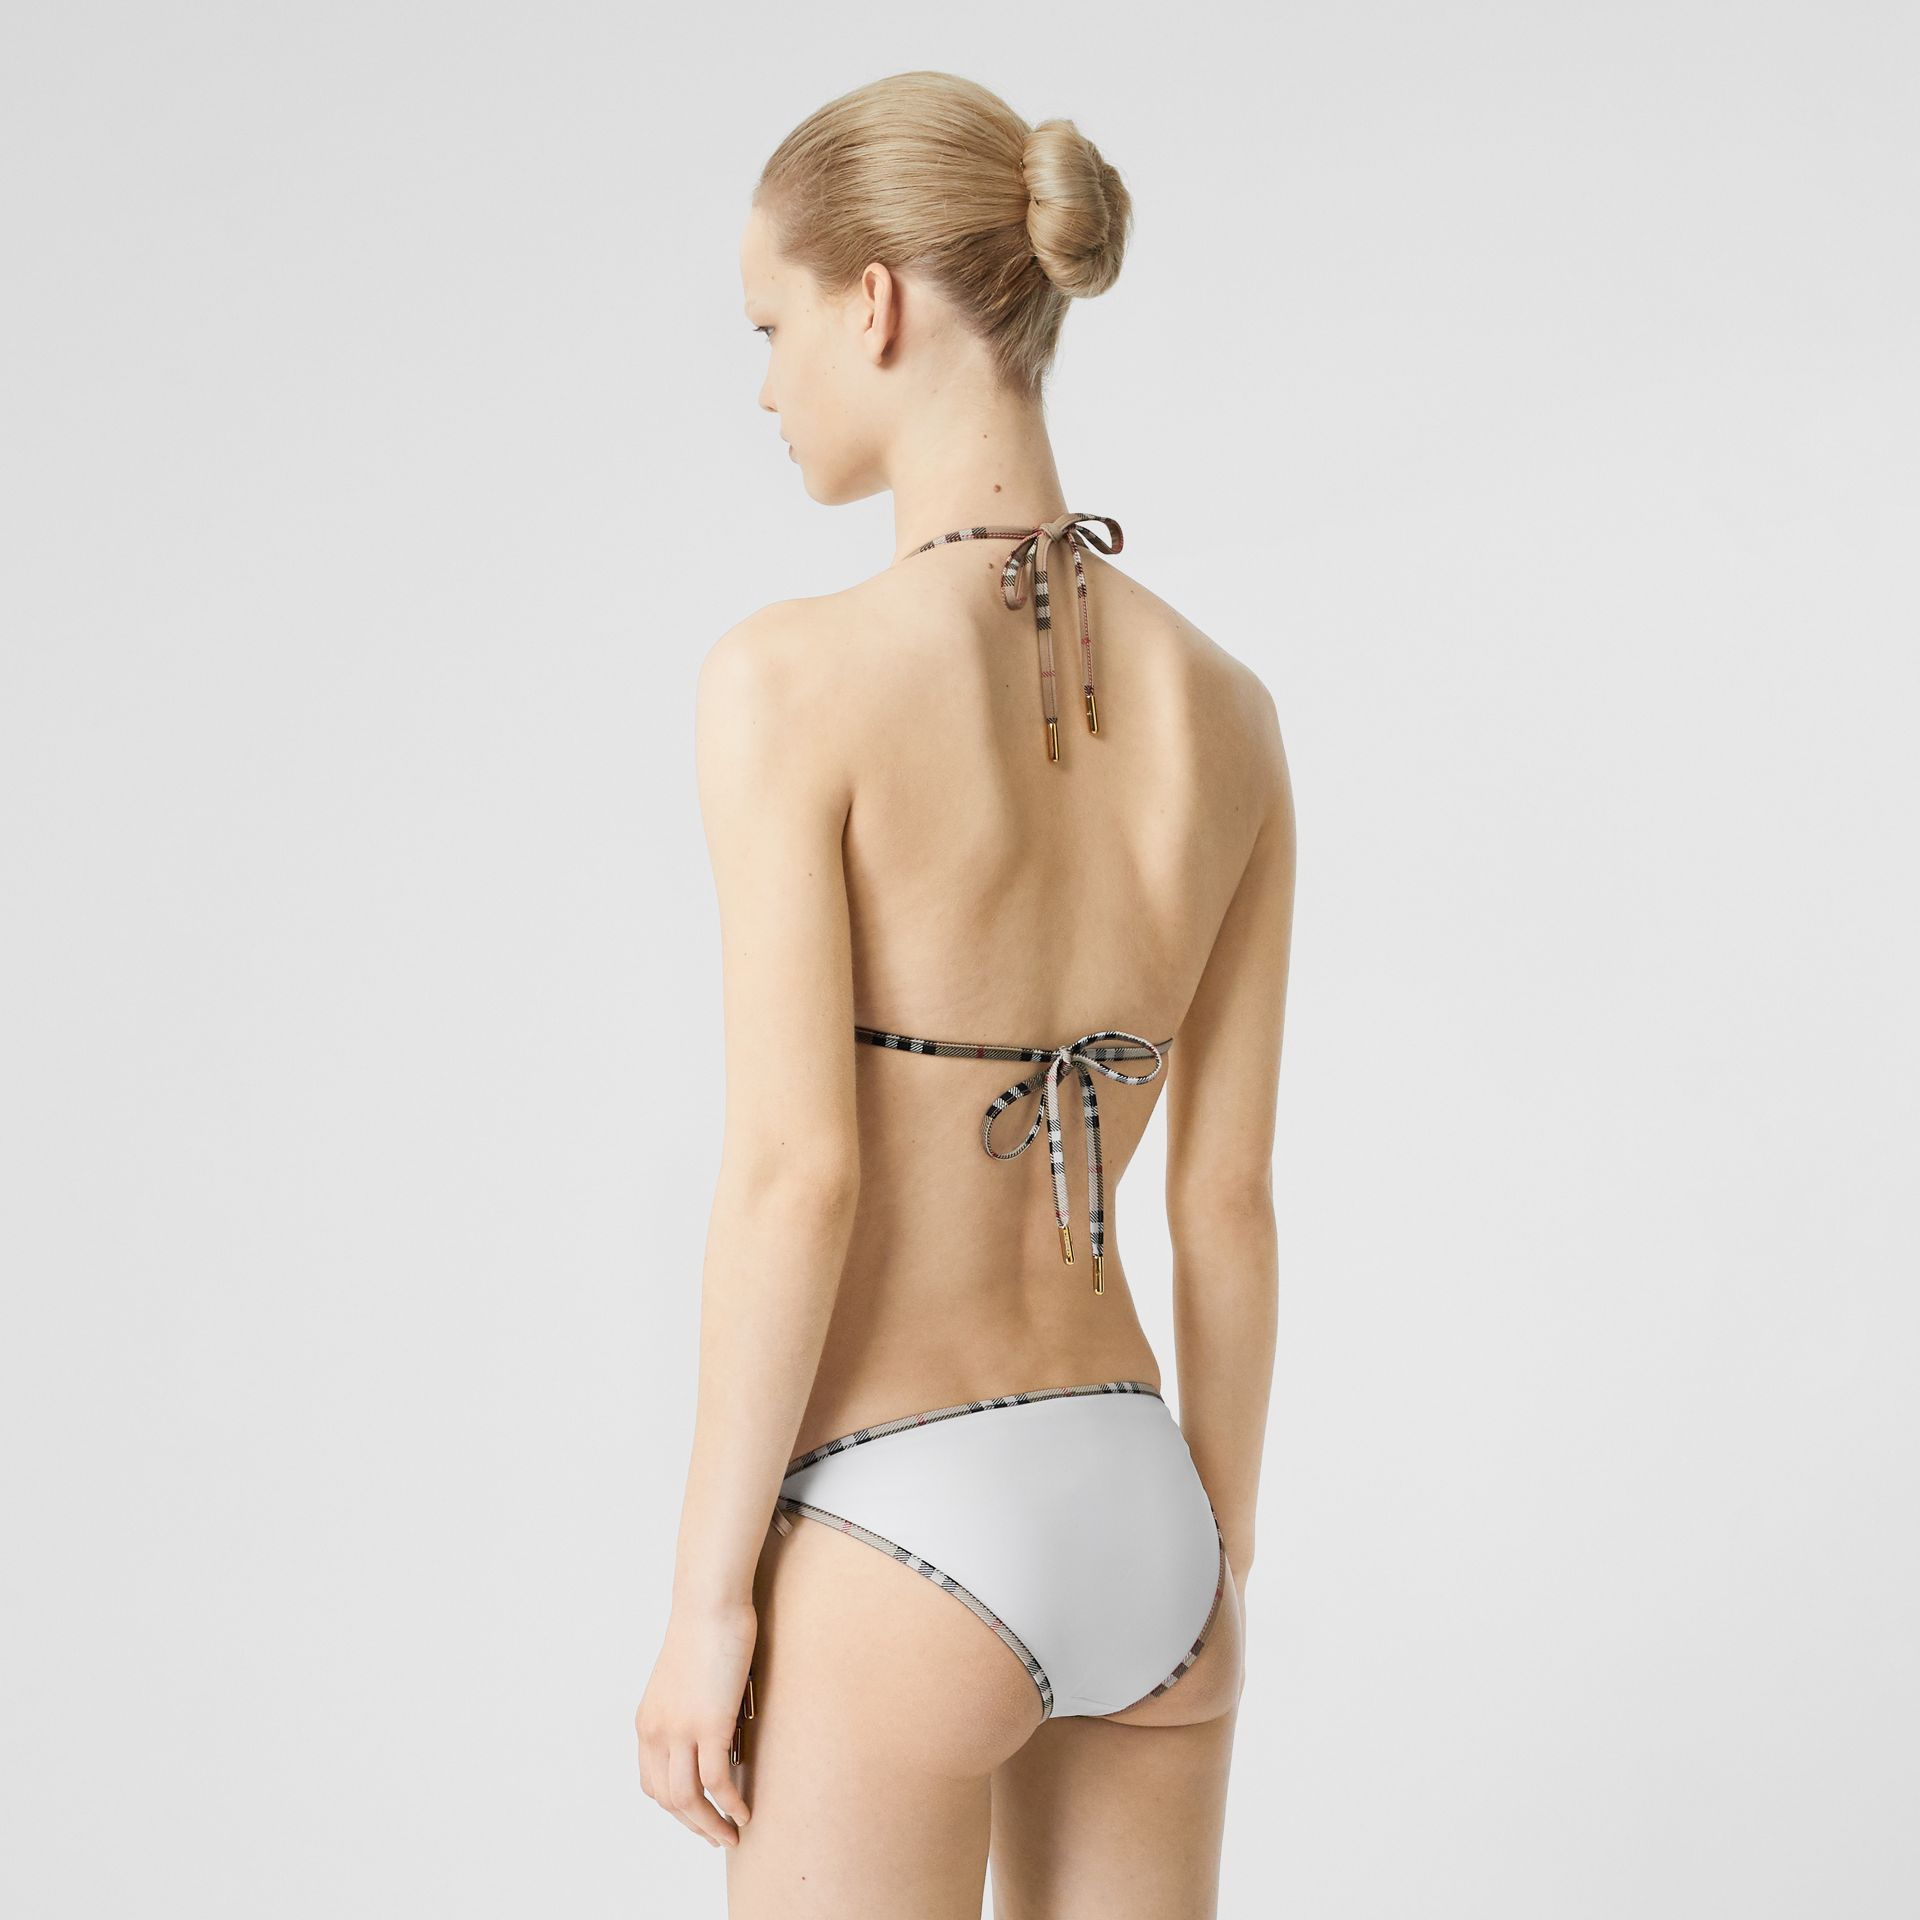 Vintage Check Detail Triangle Bikini in White | Burberry Australia - gallery image 1